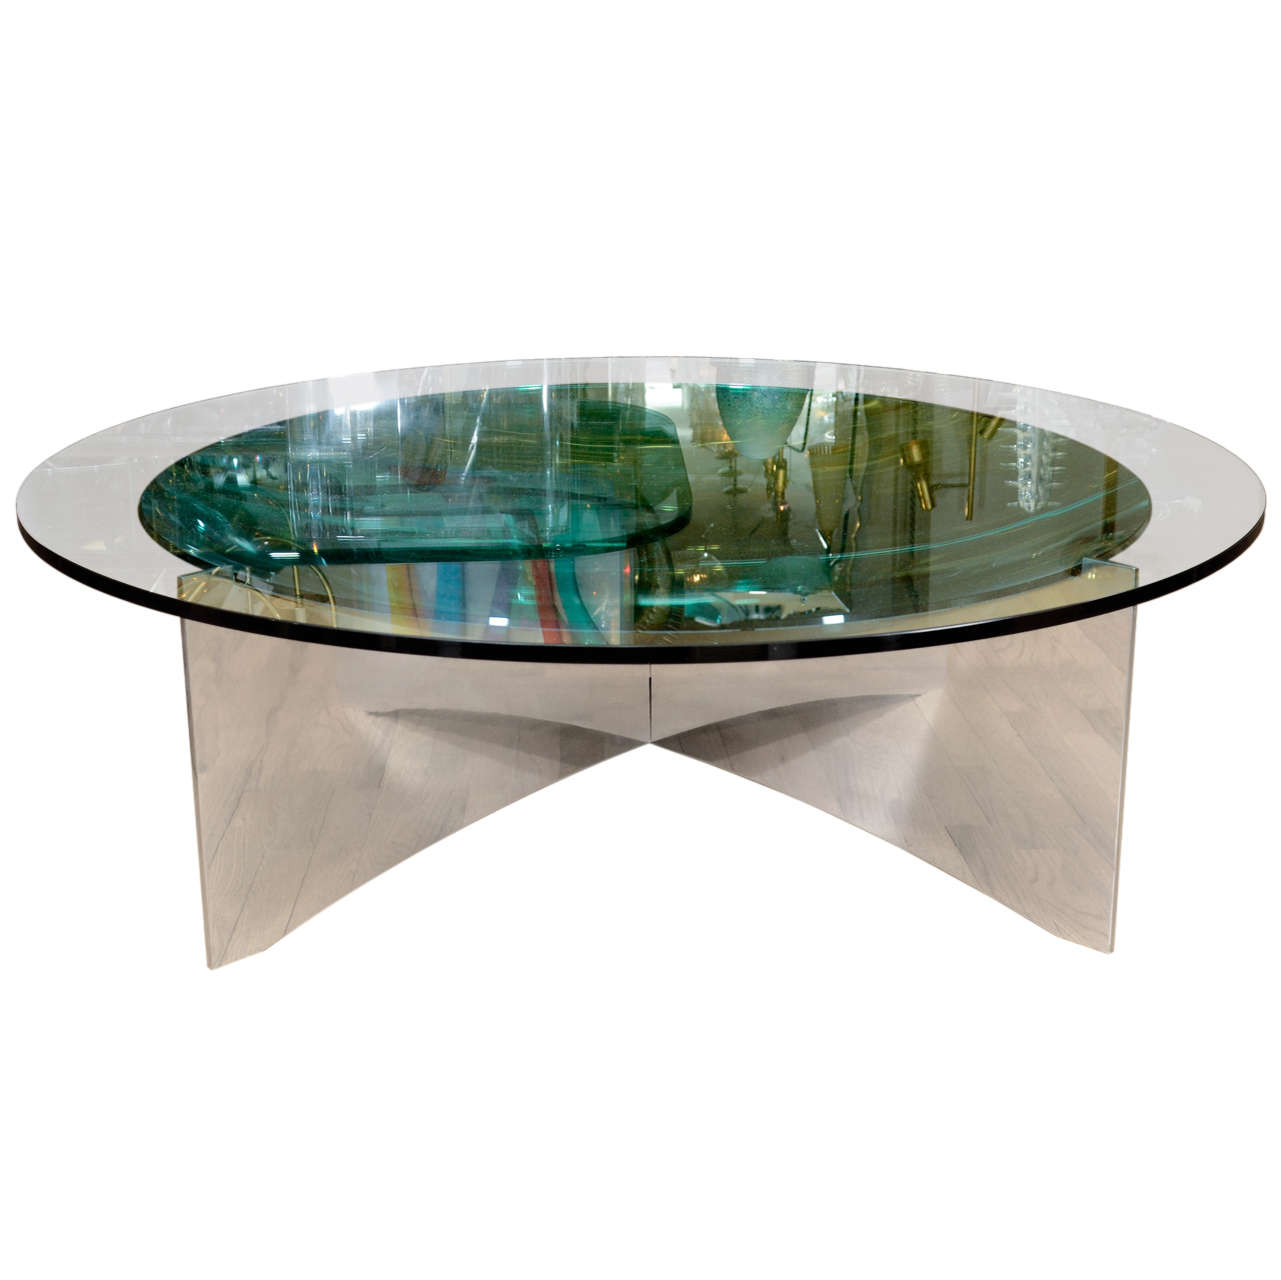 Unusual Concave Green Mercury Glass Coffee Table 1